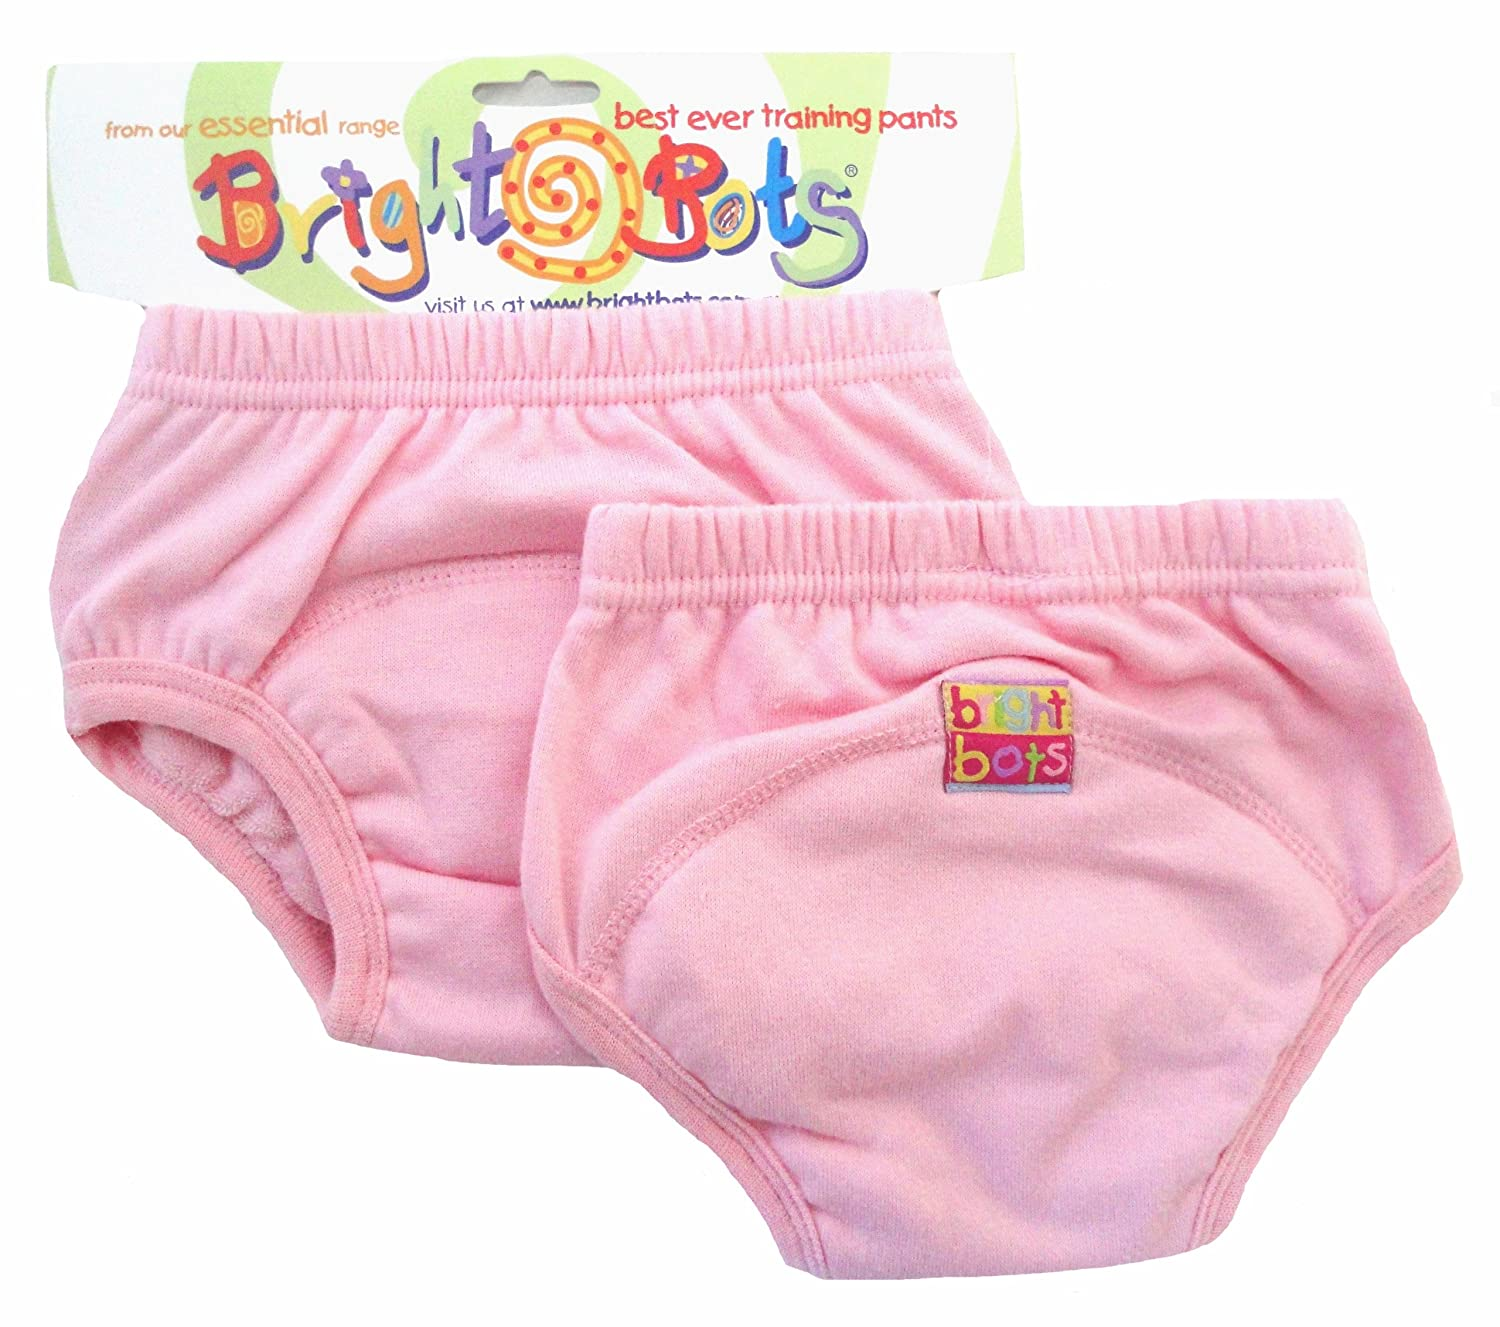 Bright Bots Potty (Rose Pâle, Lot de 2, taille M, 18–24 mois) 18-24 mois) 2PSETRA1-2PPM